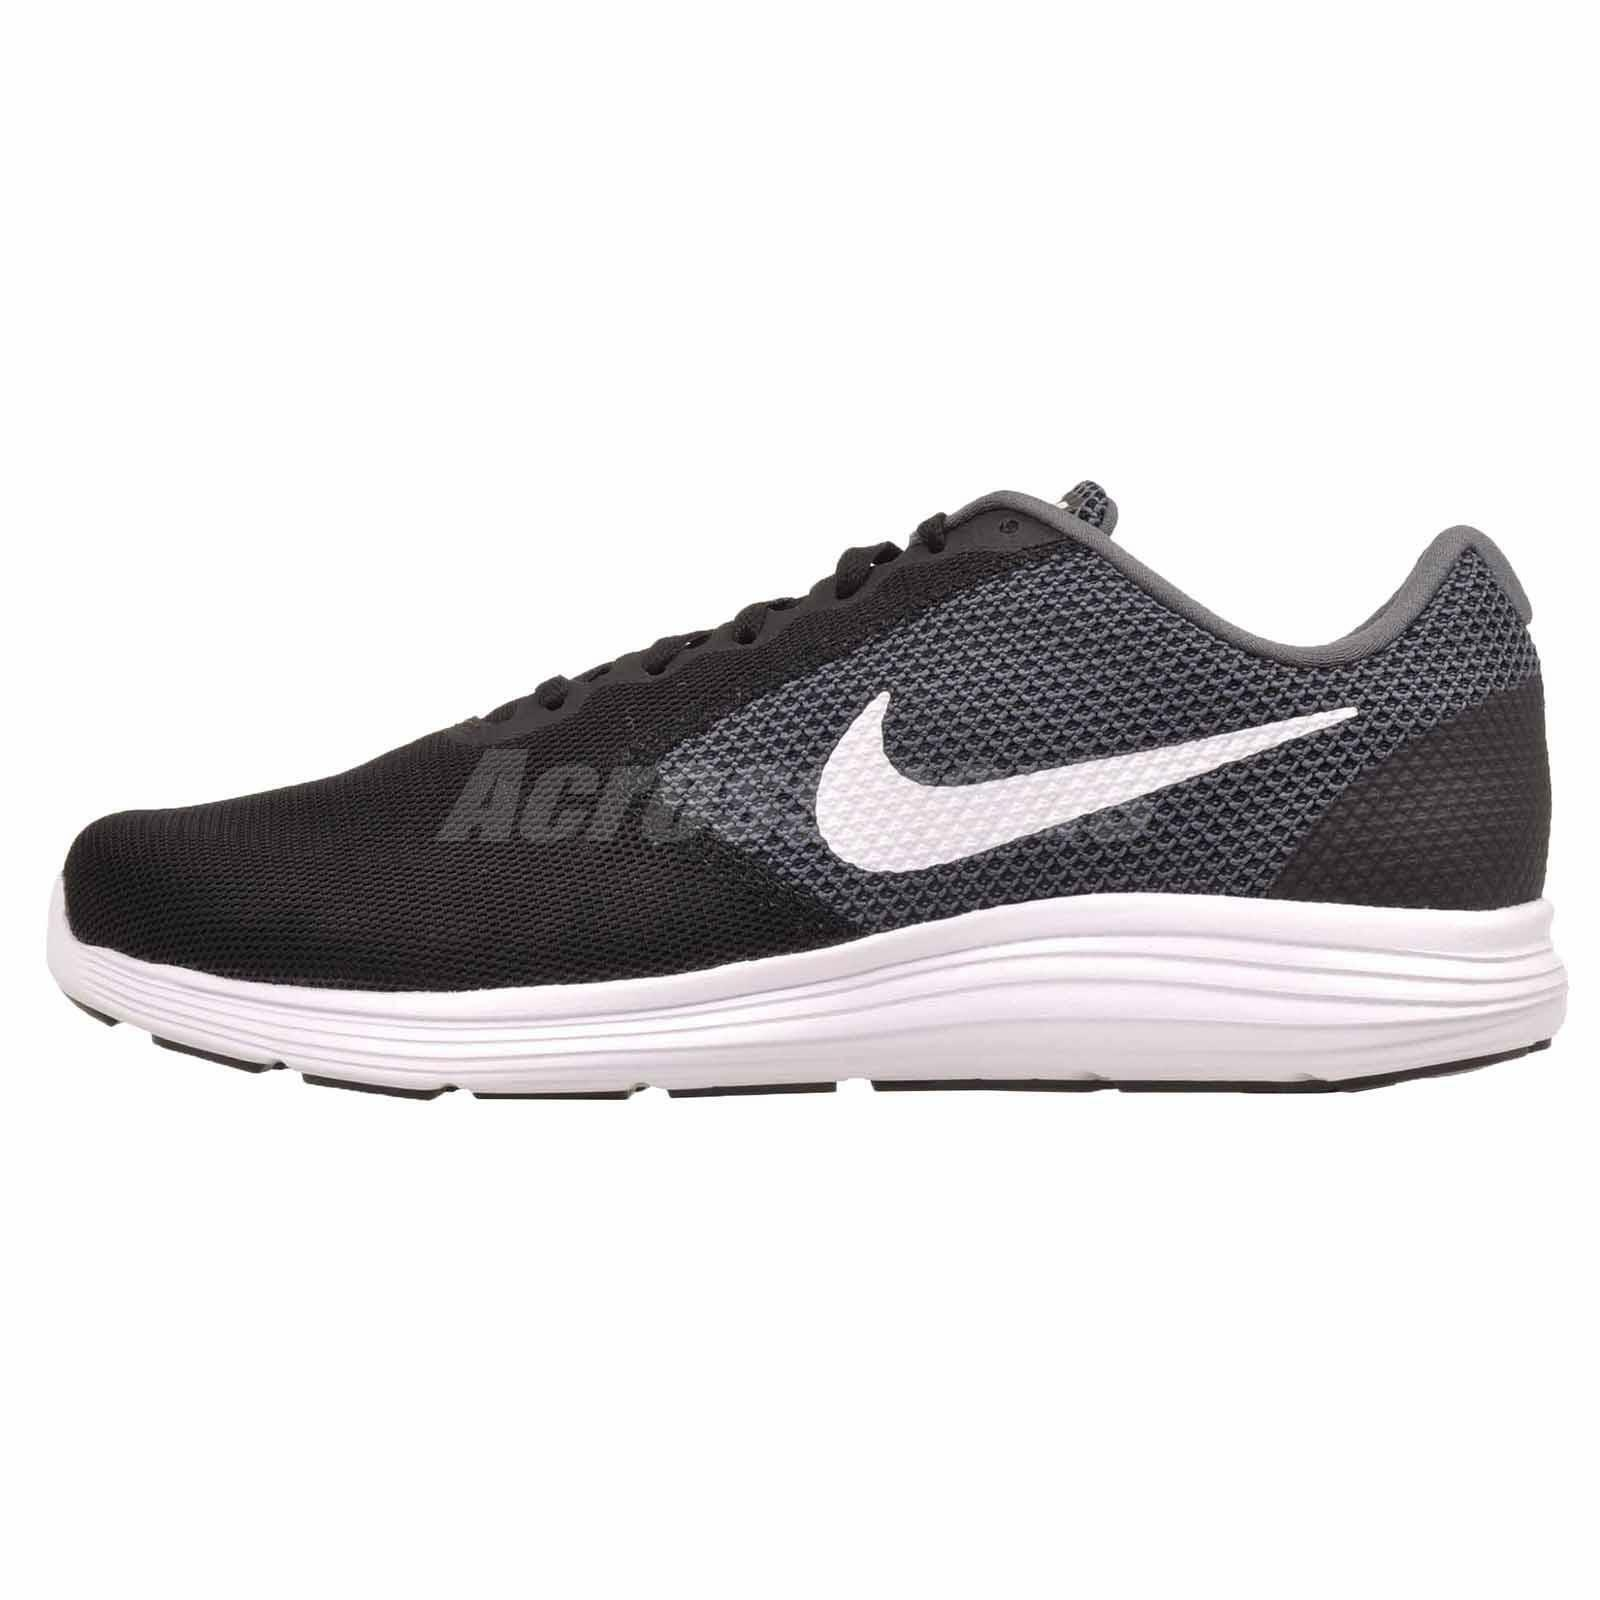 Nike Revolution 3 4E Running Mens Extra Wide shoes Dark Grey Black 819301-001